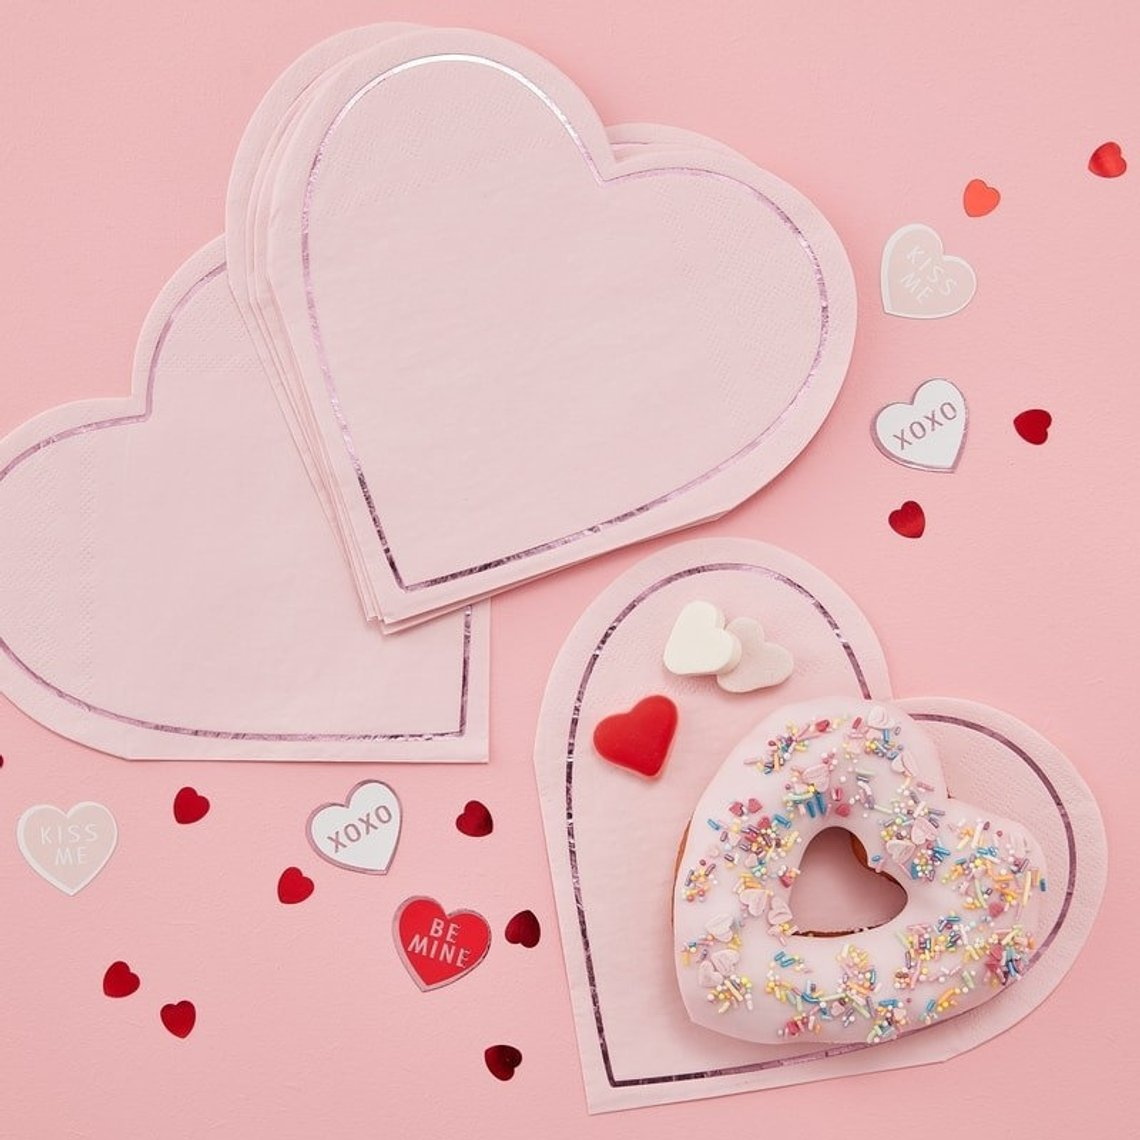 Paper Heart Shaped Napkins for Valentine's Day